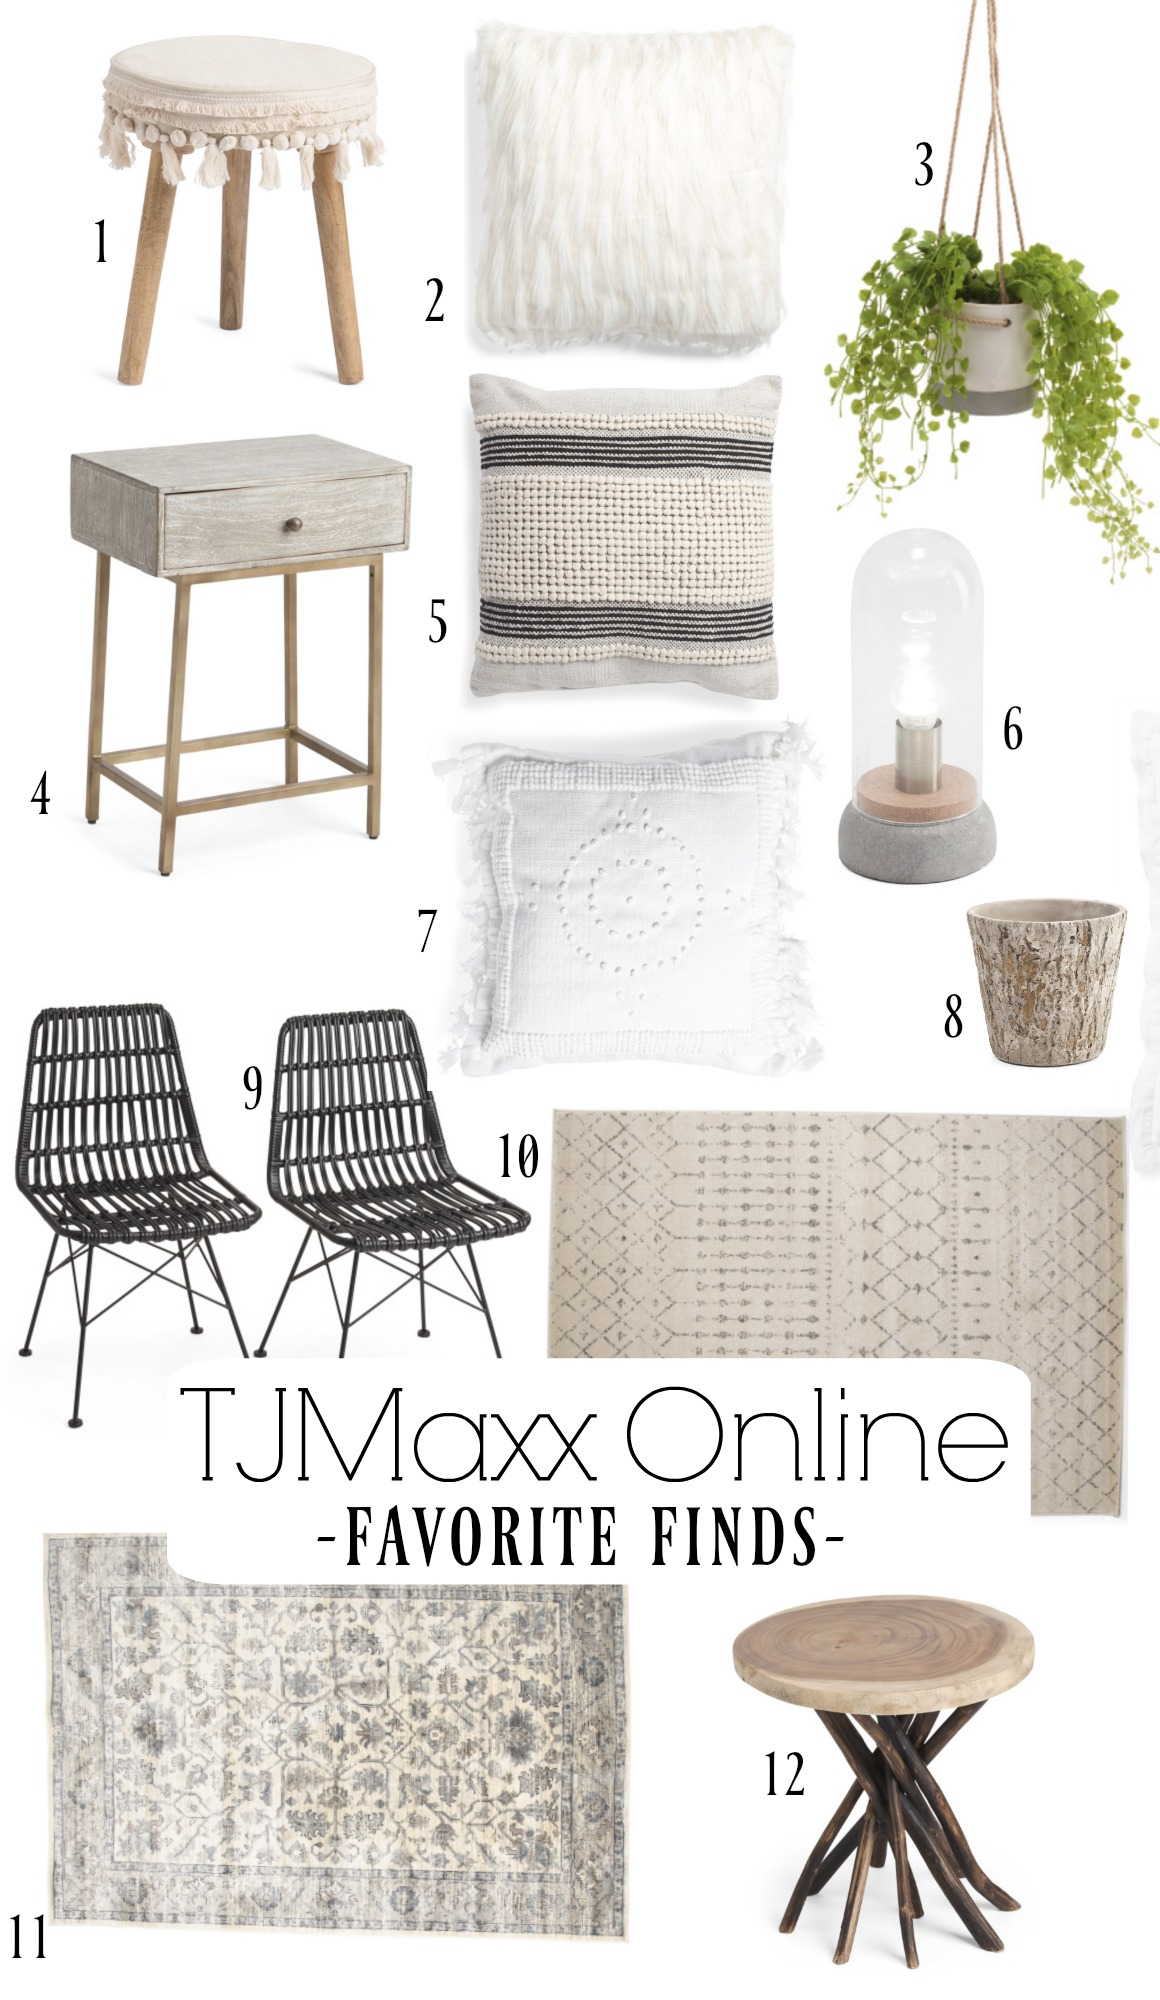 TJMaxx Online Favorite Finds